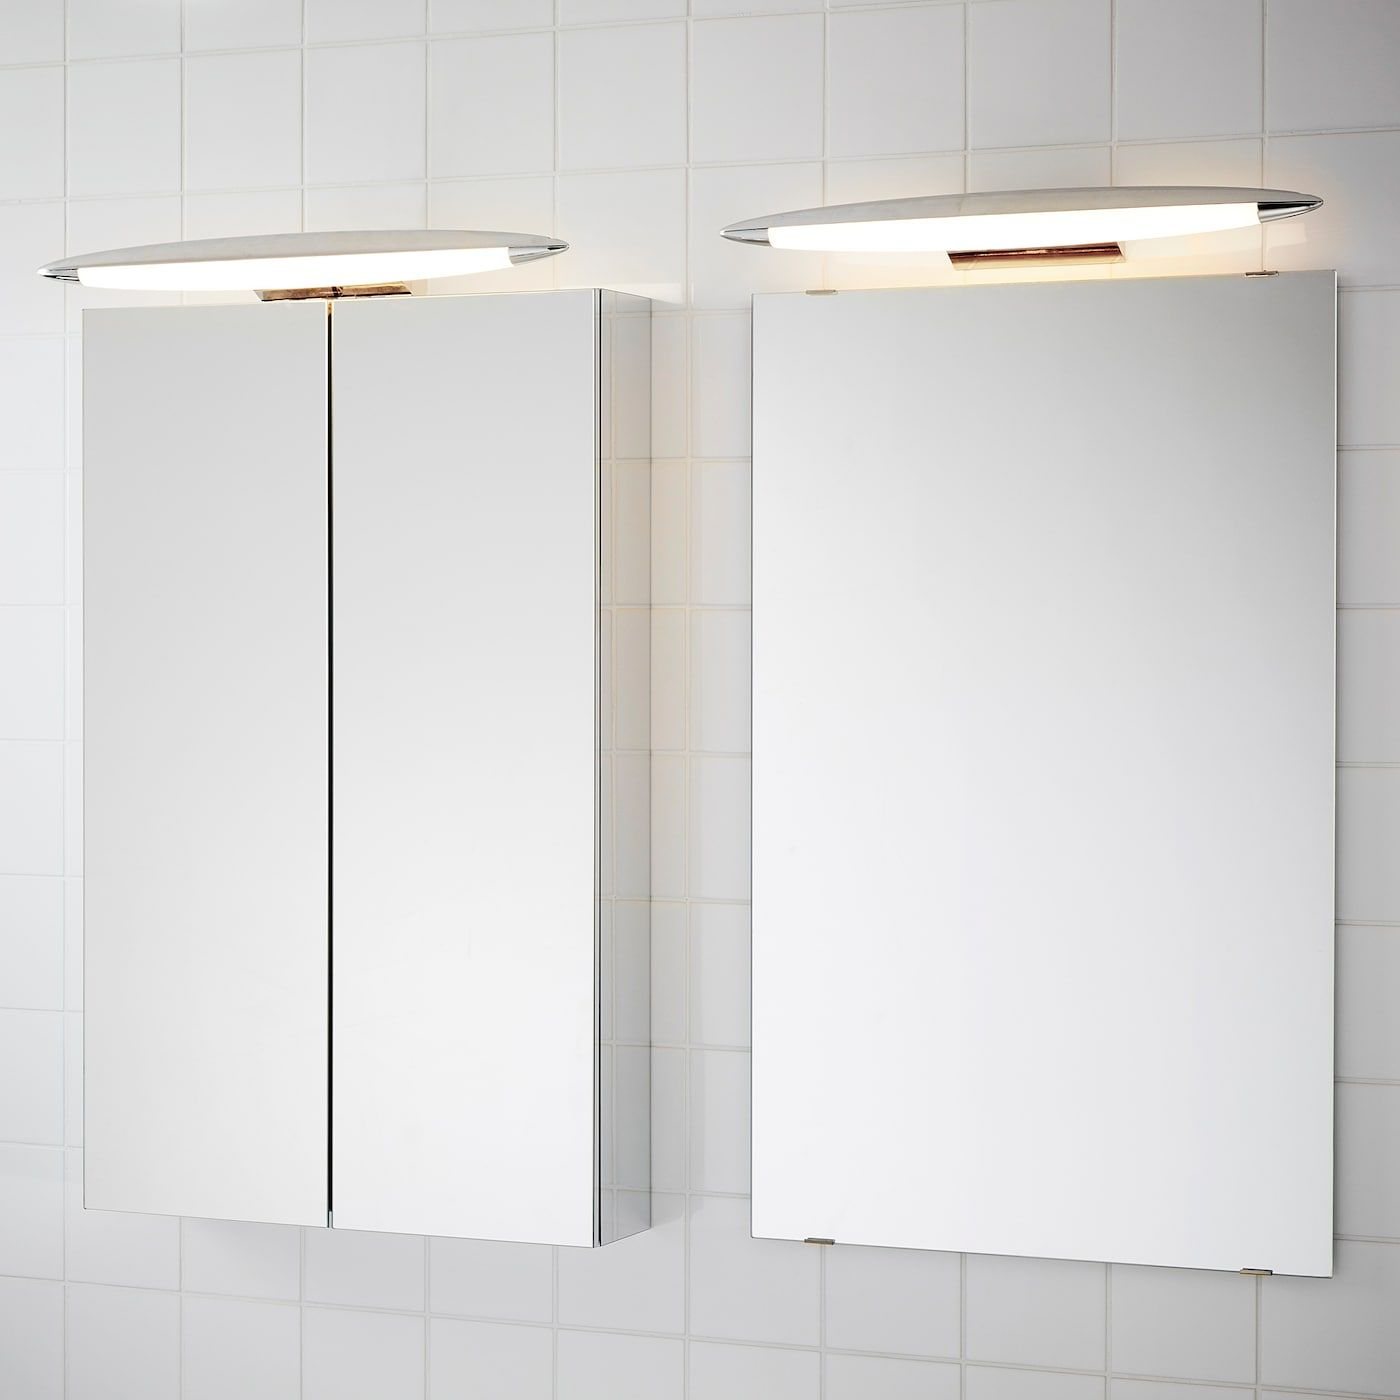 Ikea Skepp Led Cabinet Wall Light In 2020 Bathroom Light